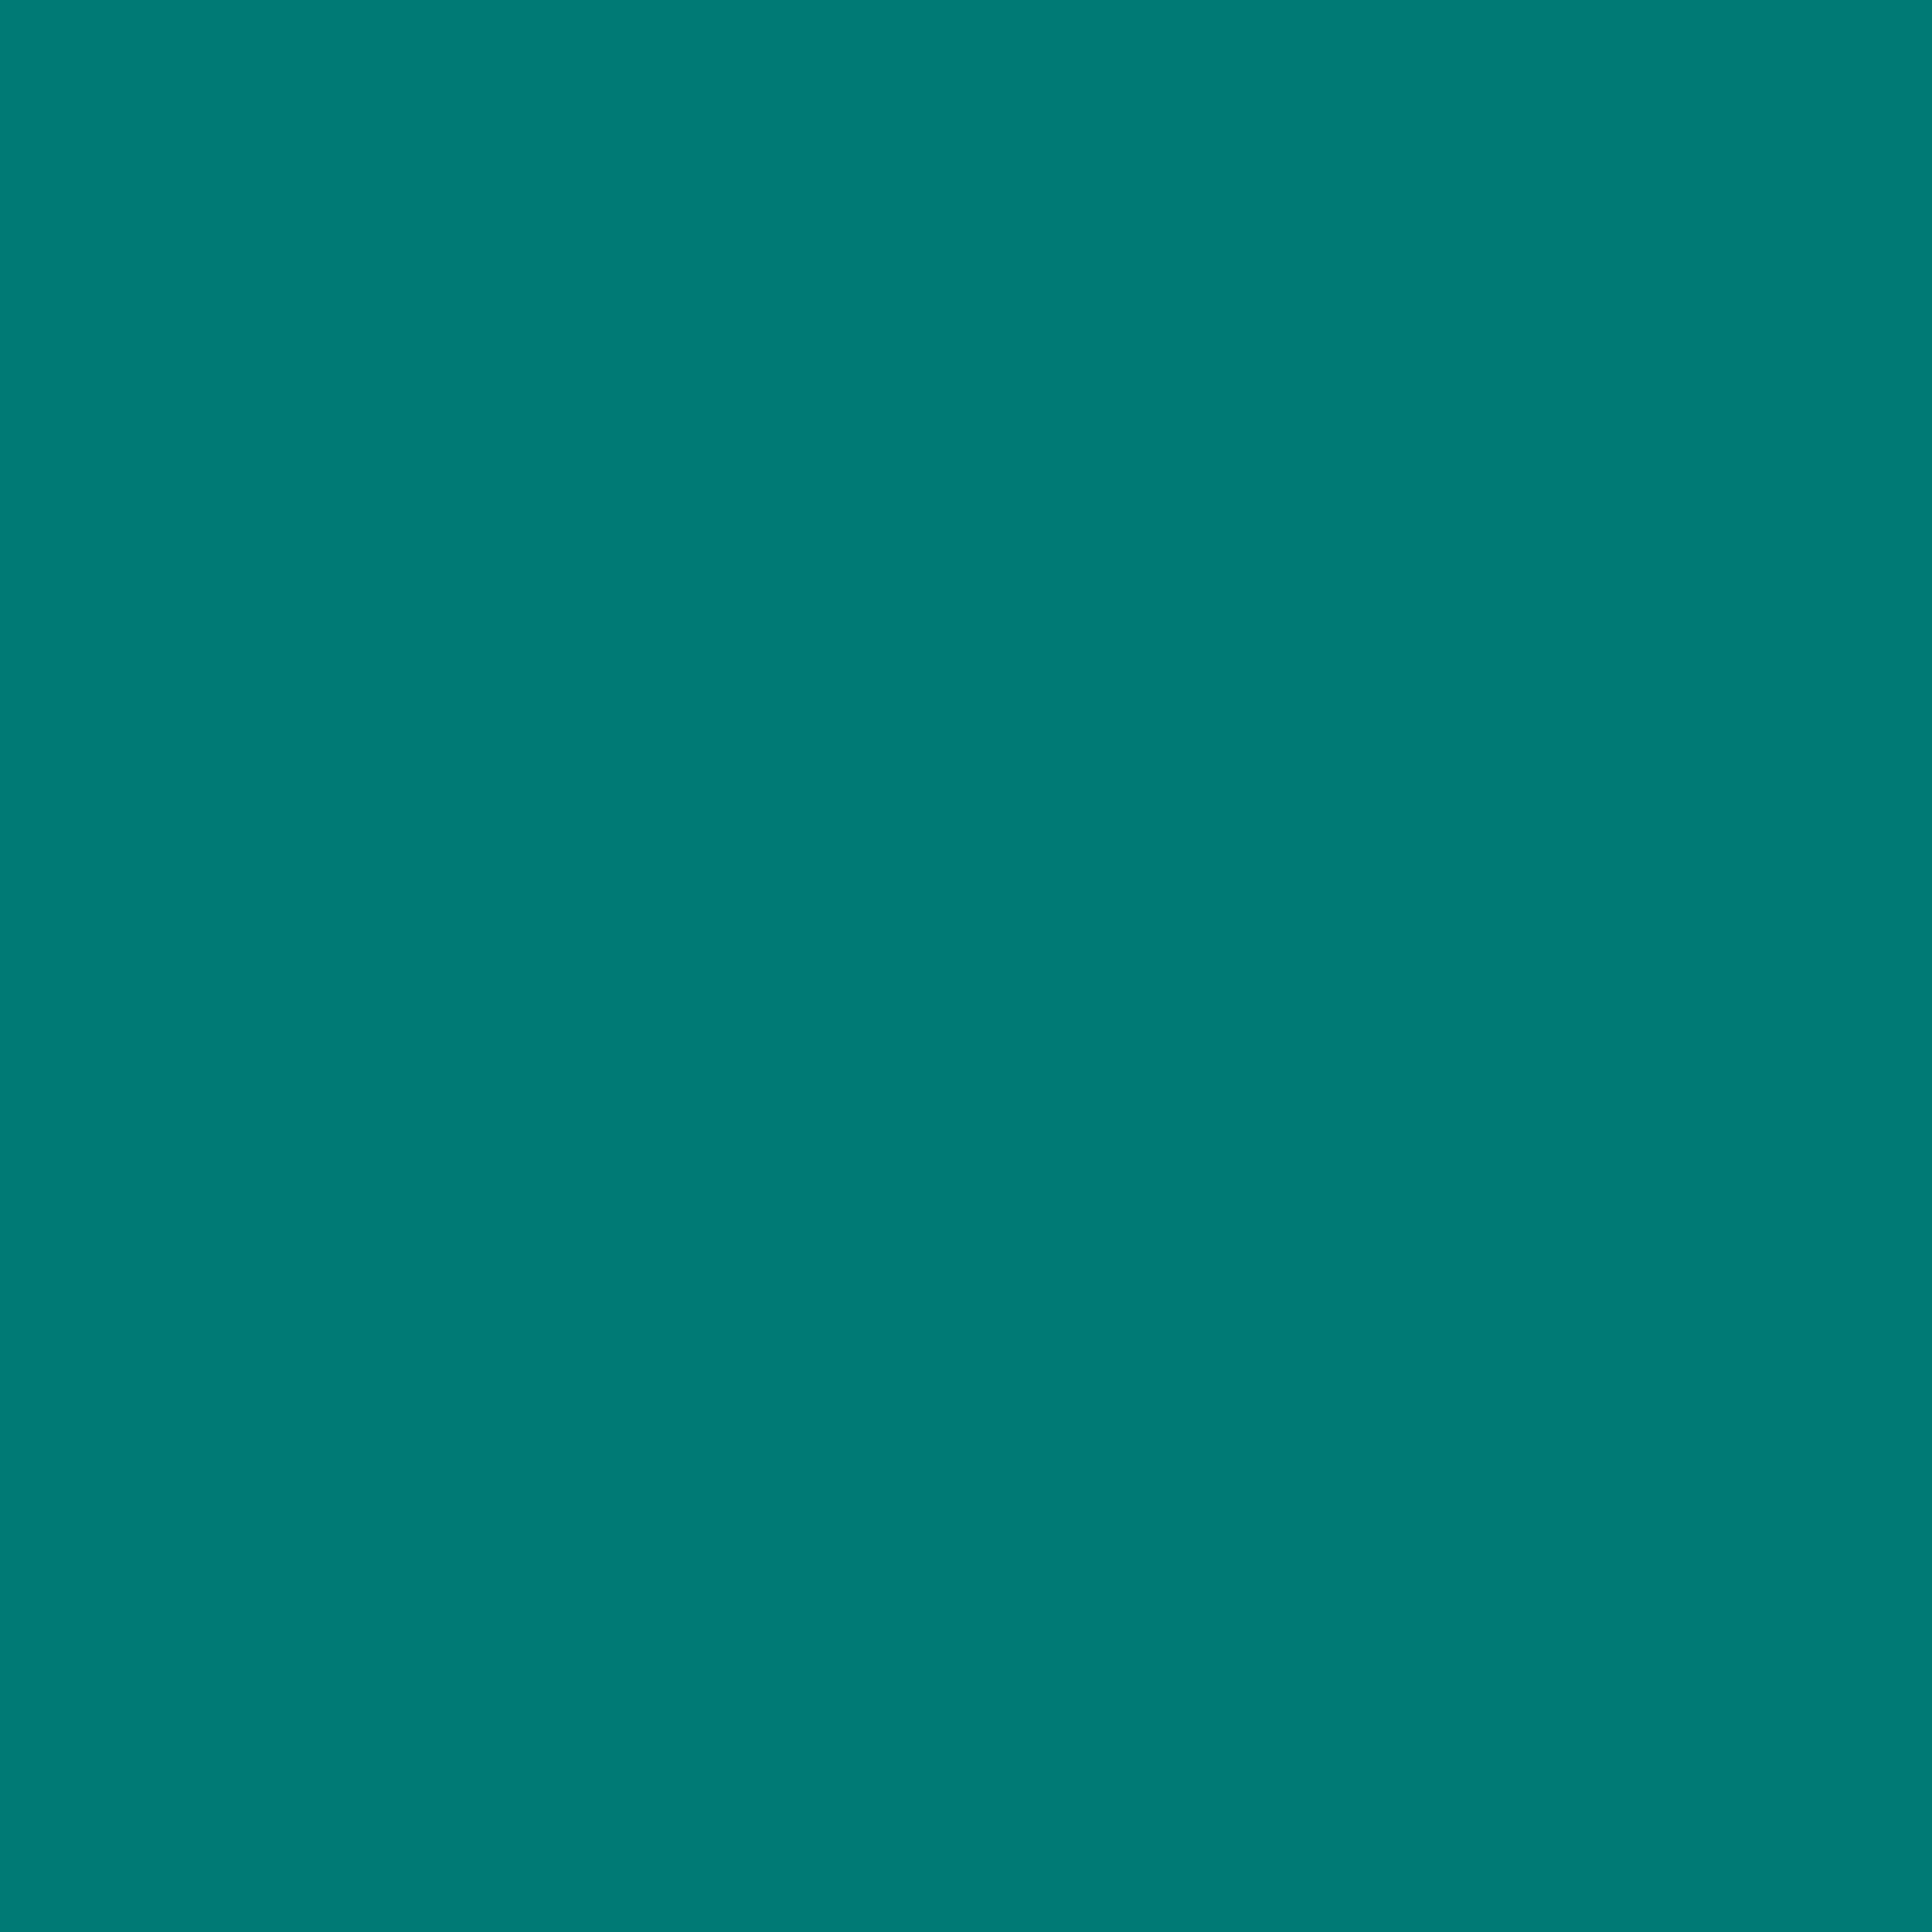 Dark teal transparent craft vinyl